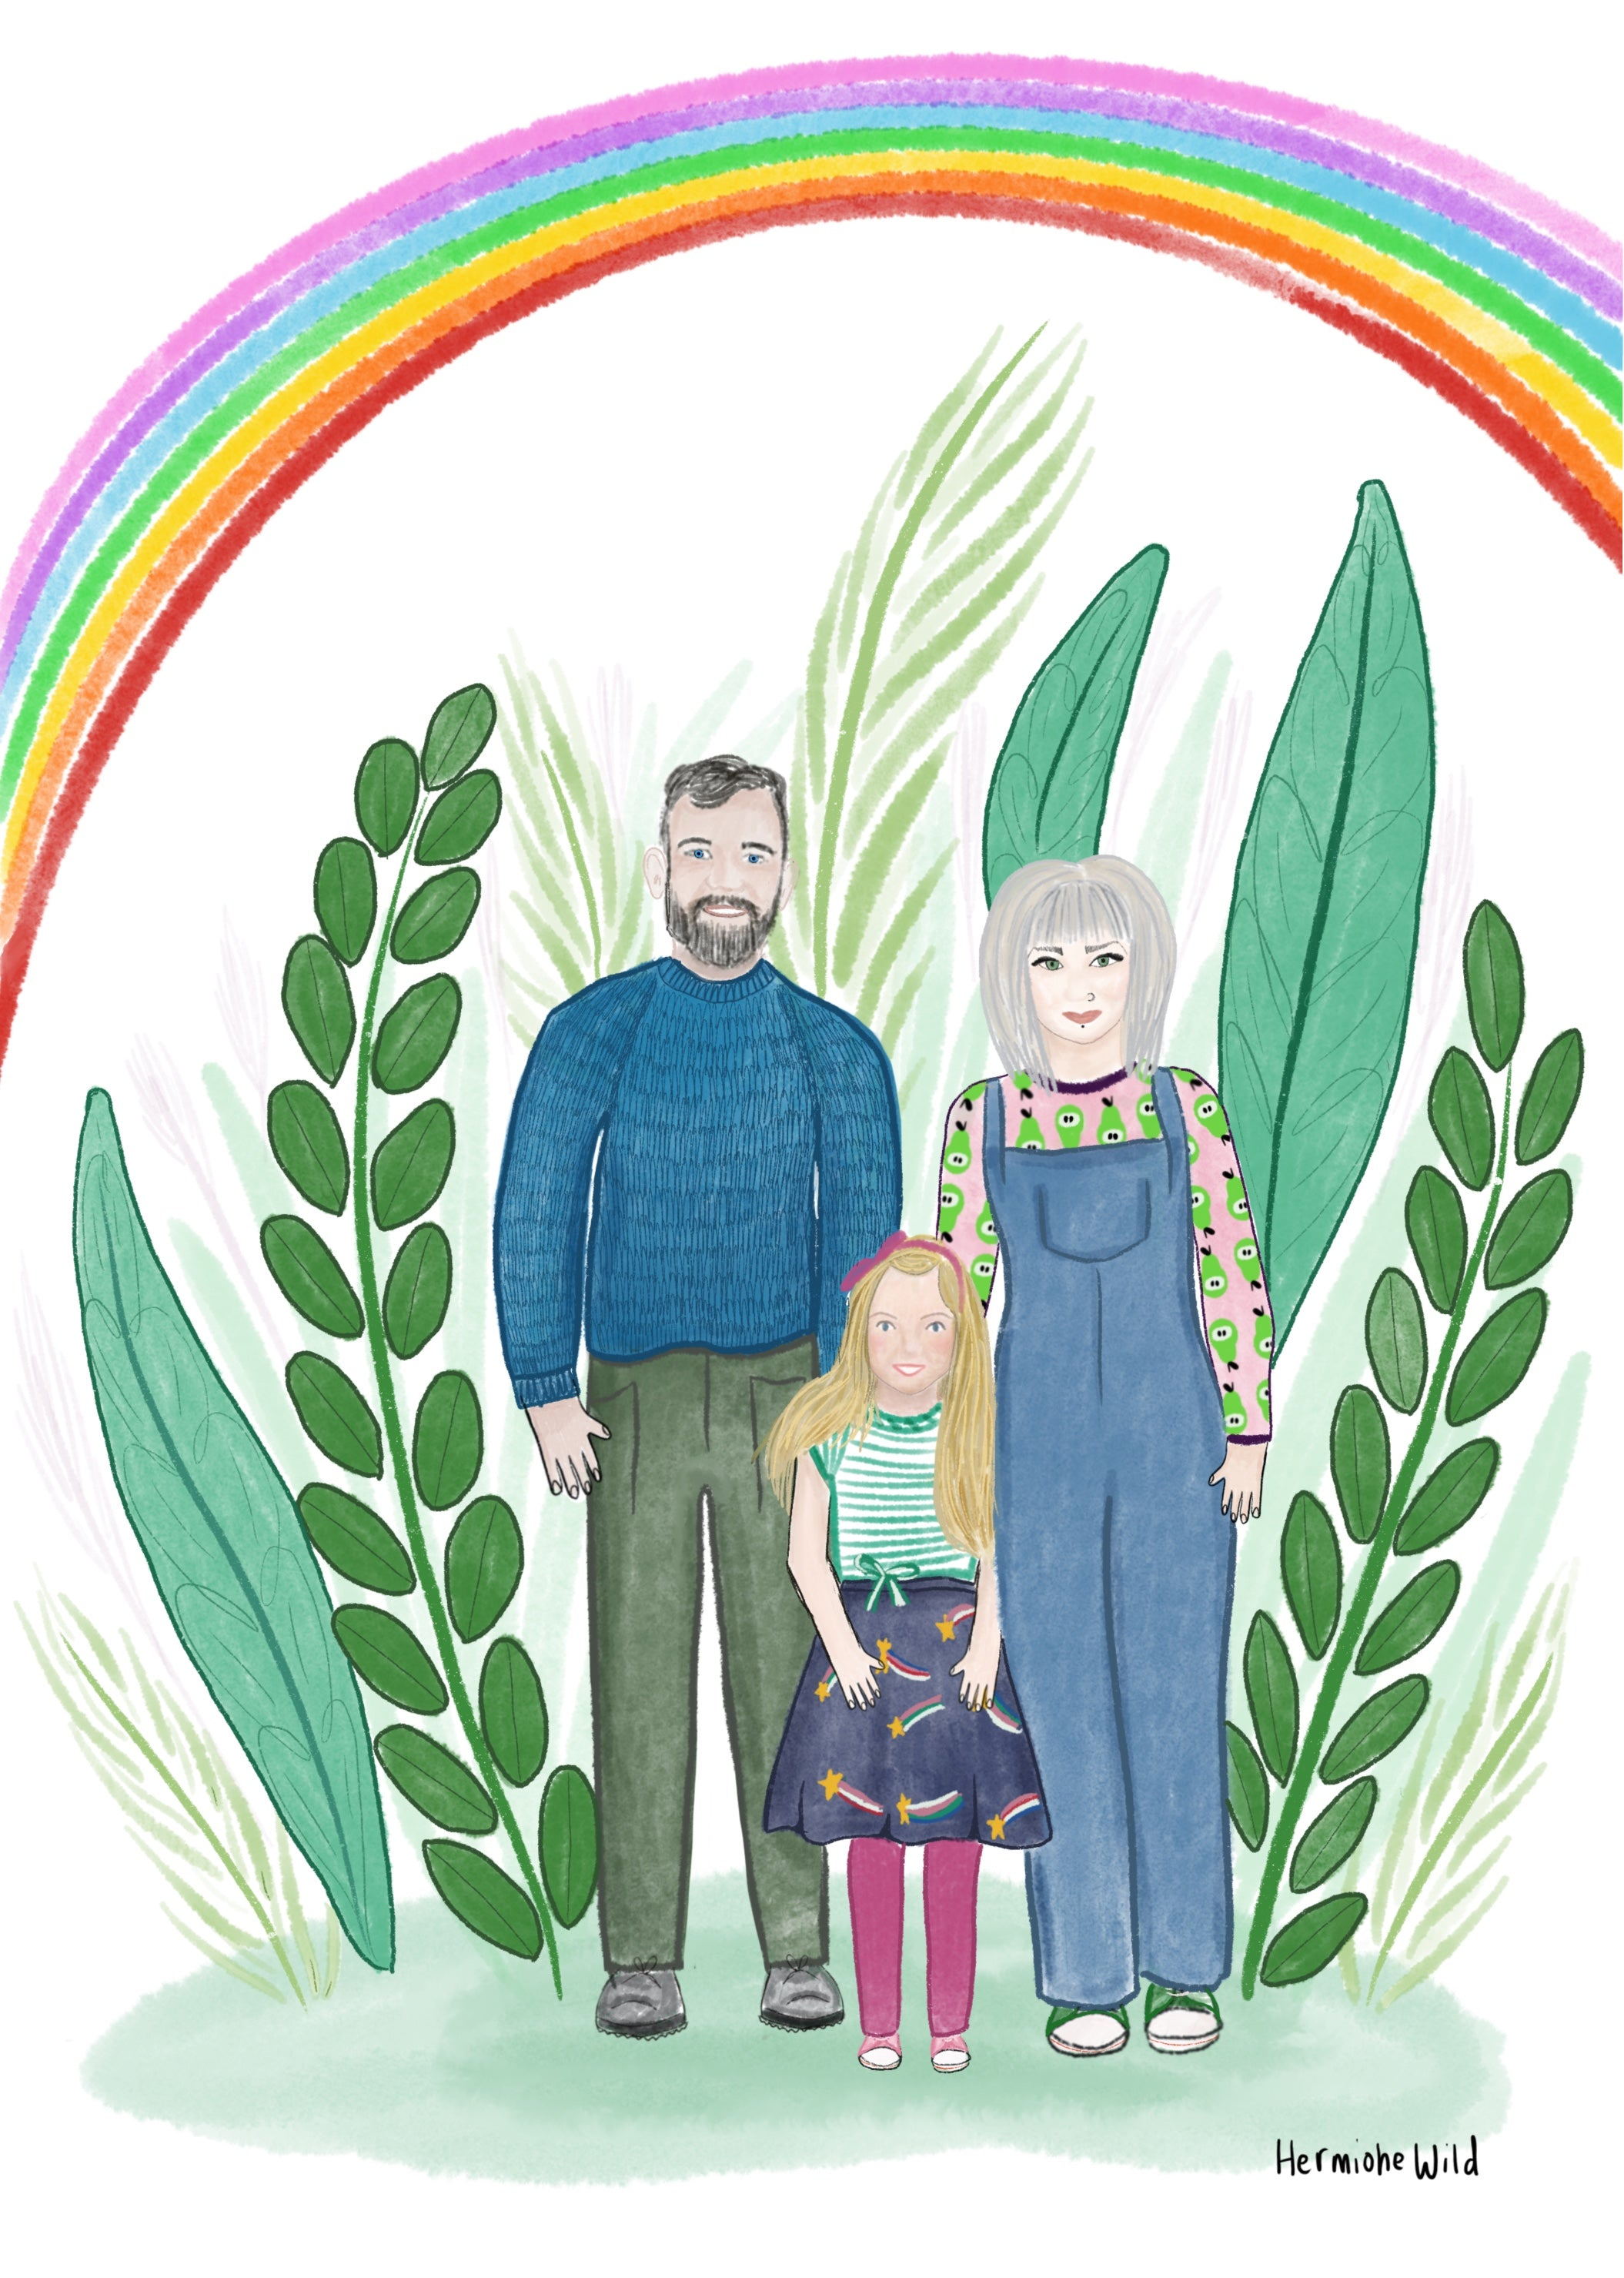 Family portrait with mother, father and daughter in front of plants and rainbow